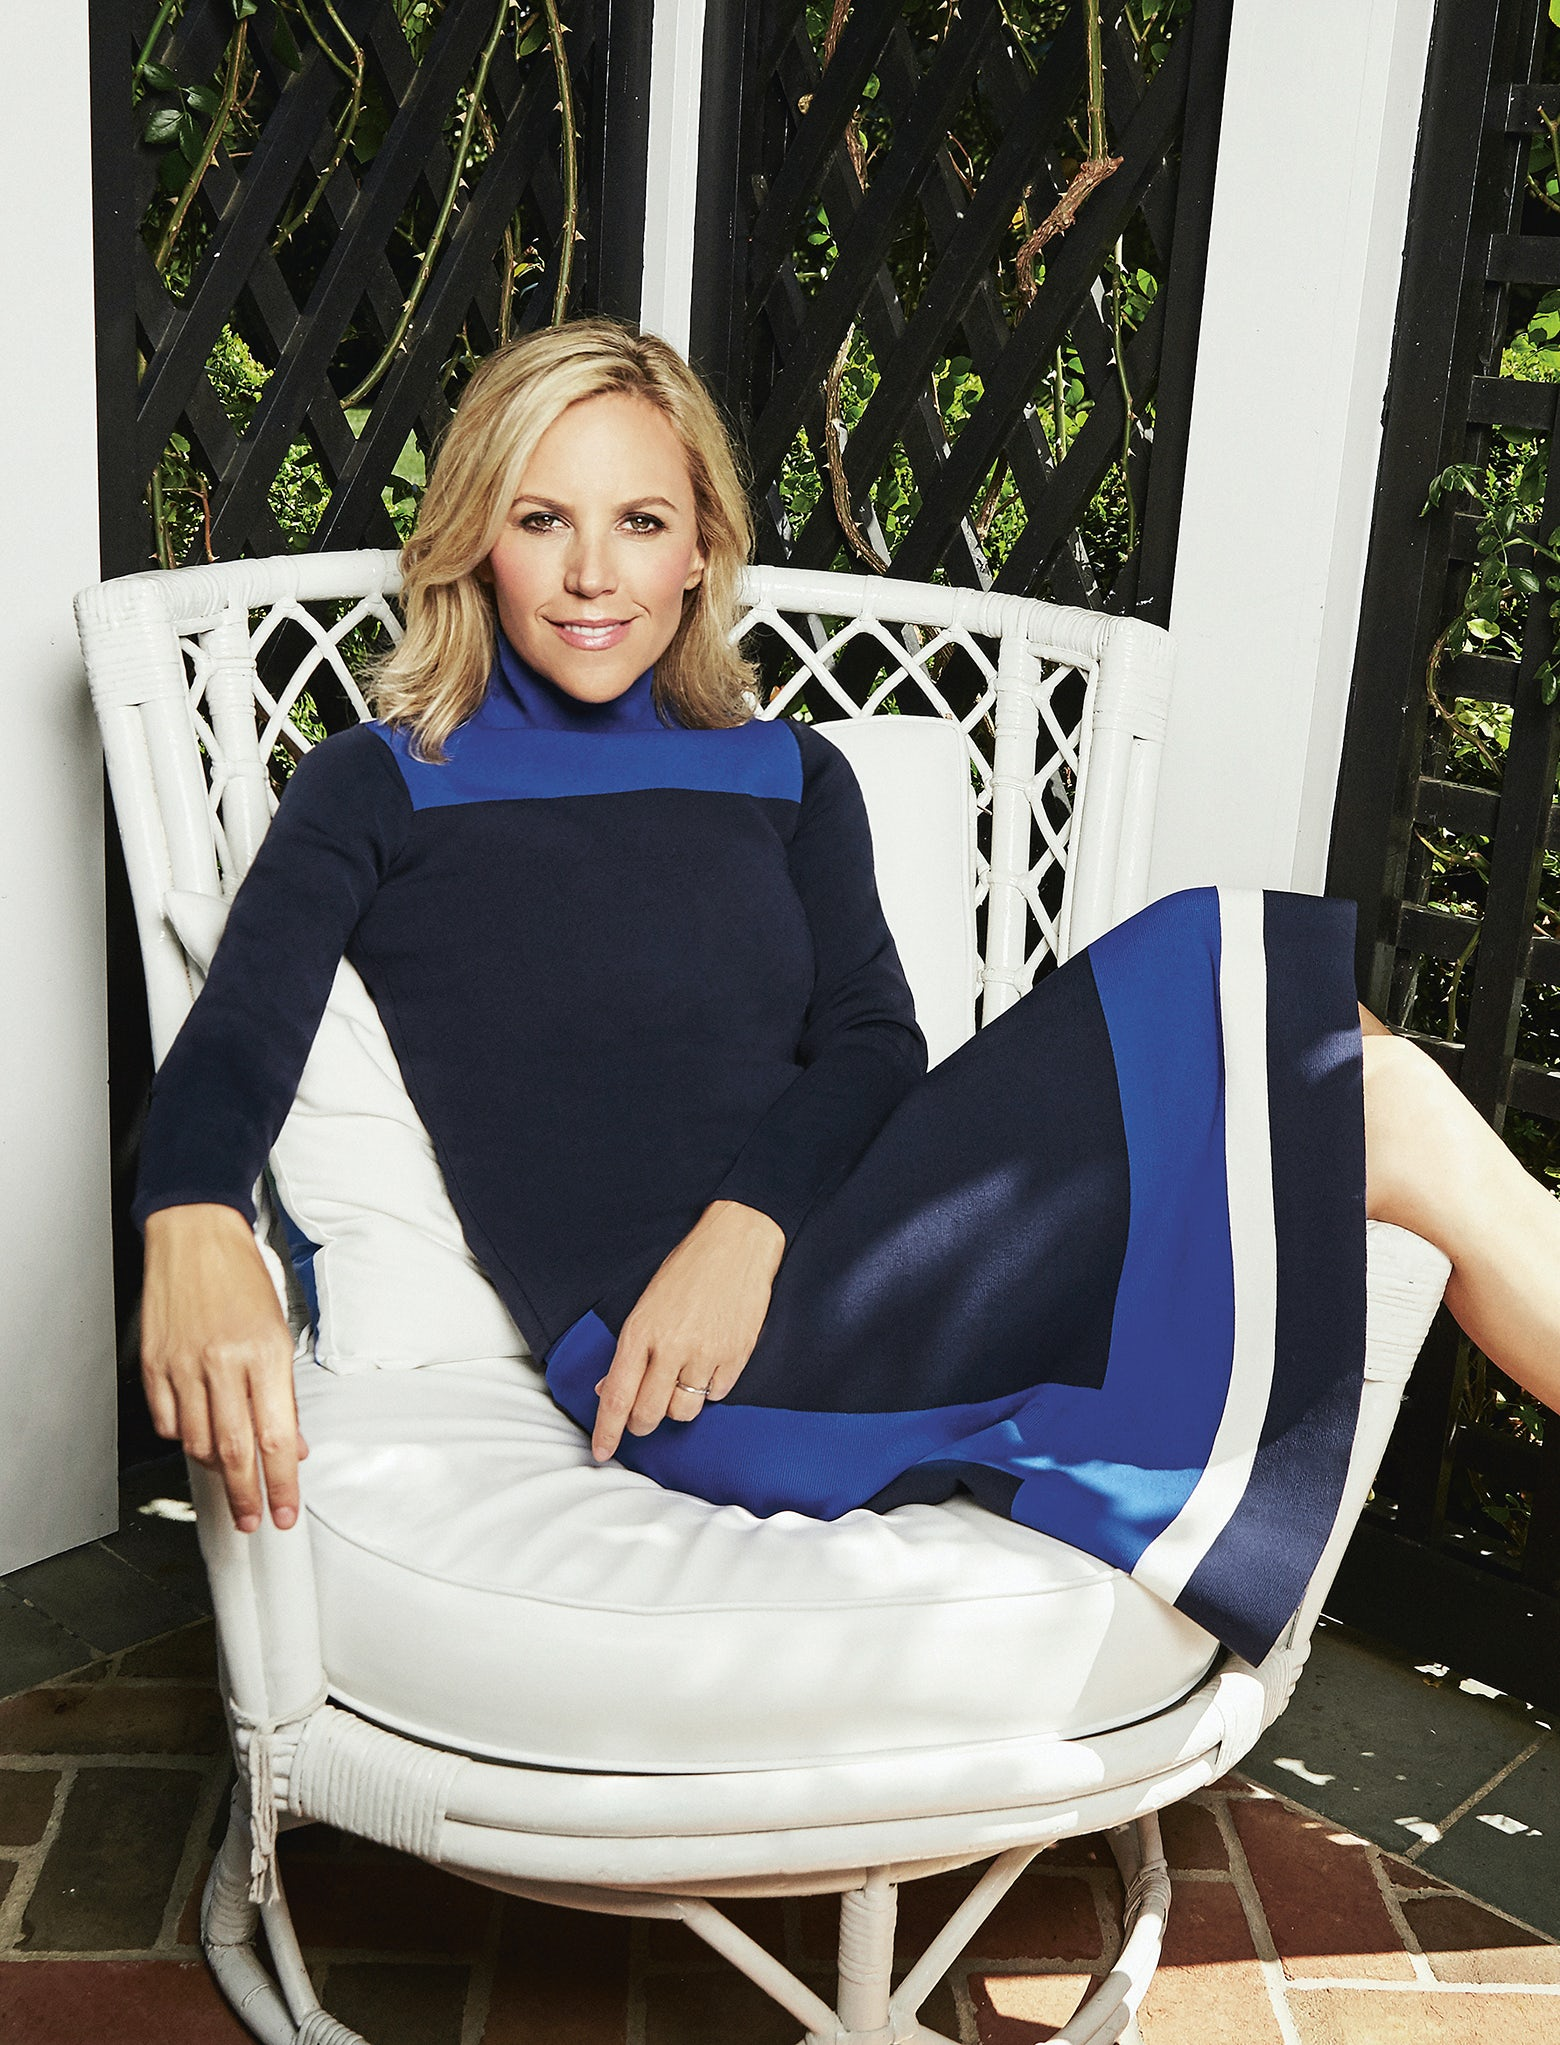 Article cover of Can Tory Burch Build Another Billion-Dollar Brand?